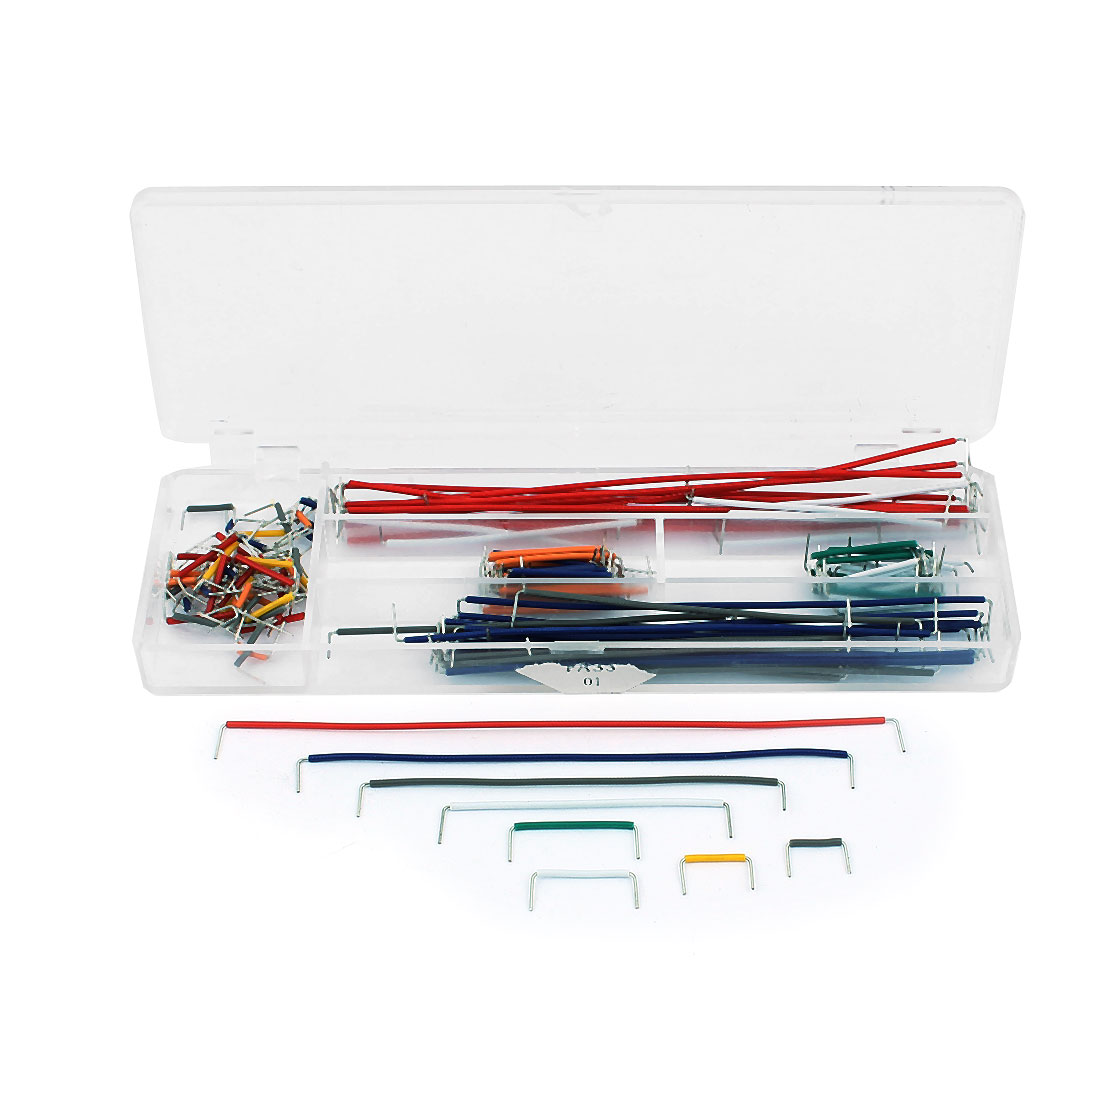 140 Pcs Breadboard Jumper Cable Wire Kit for Board